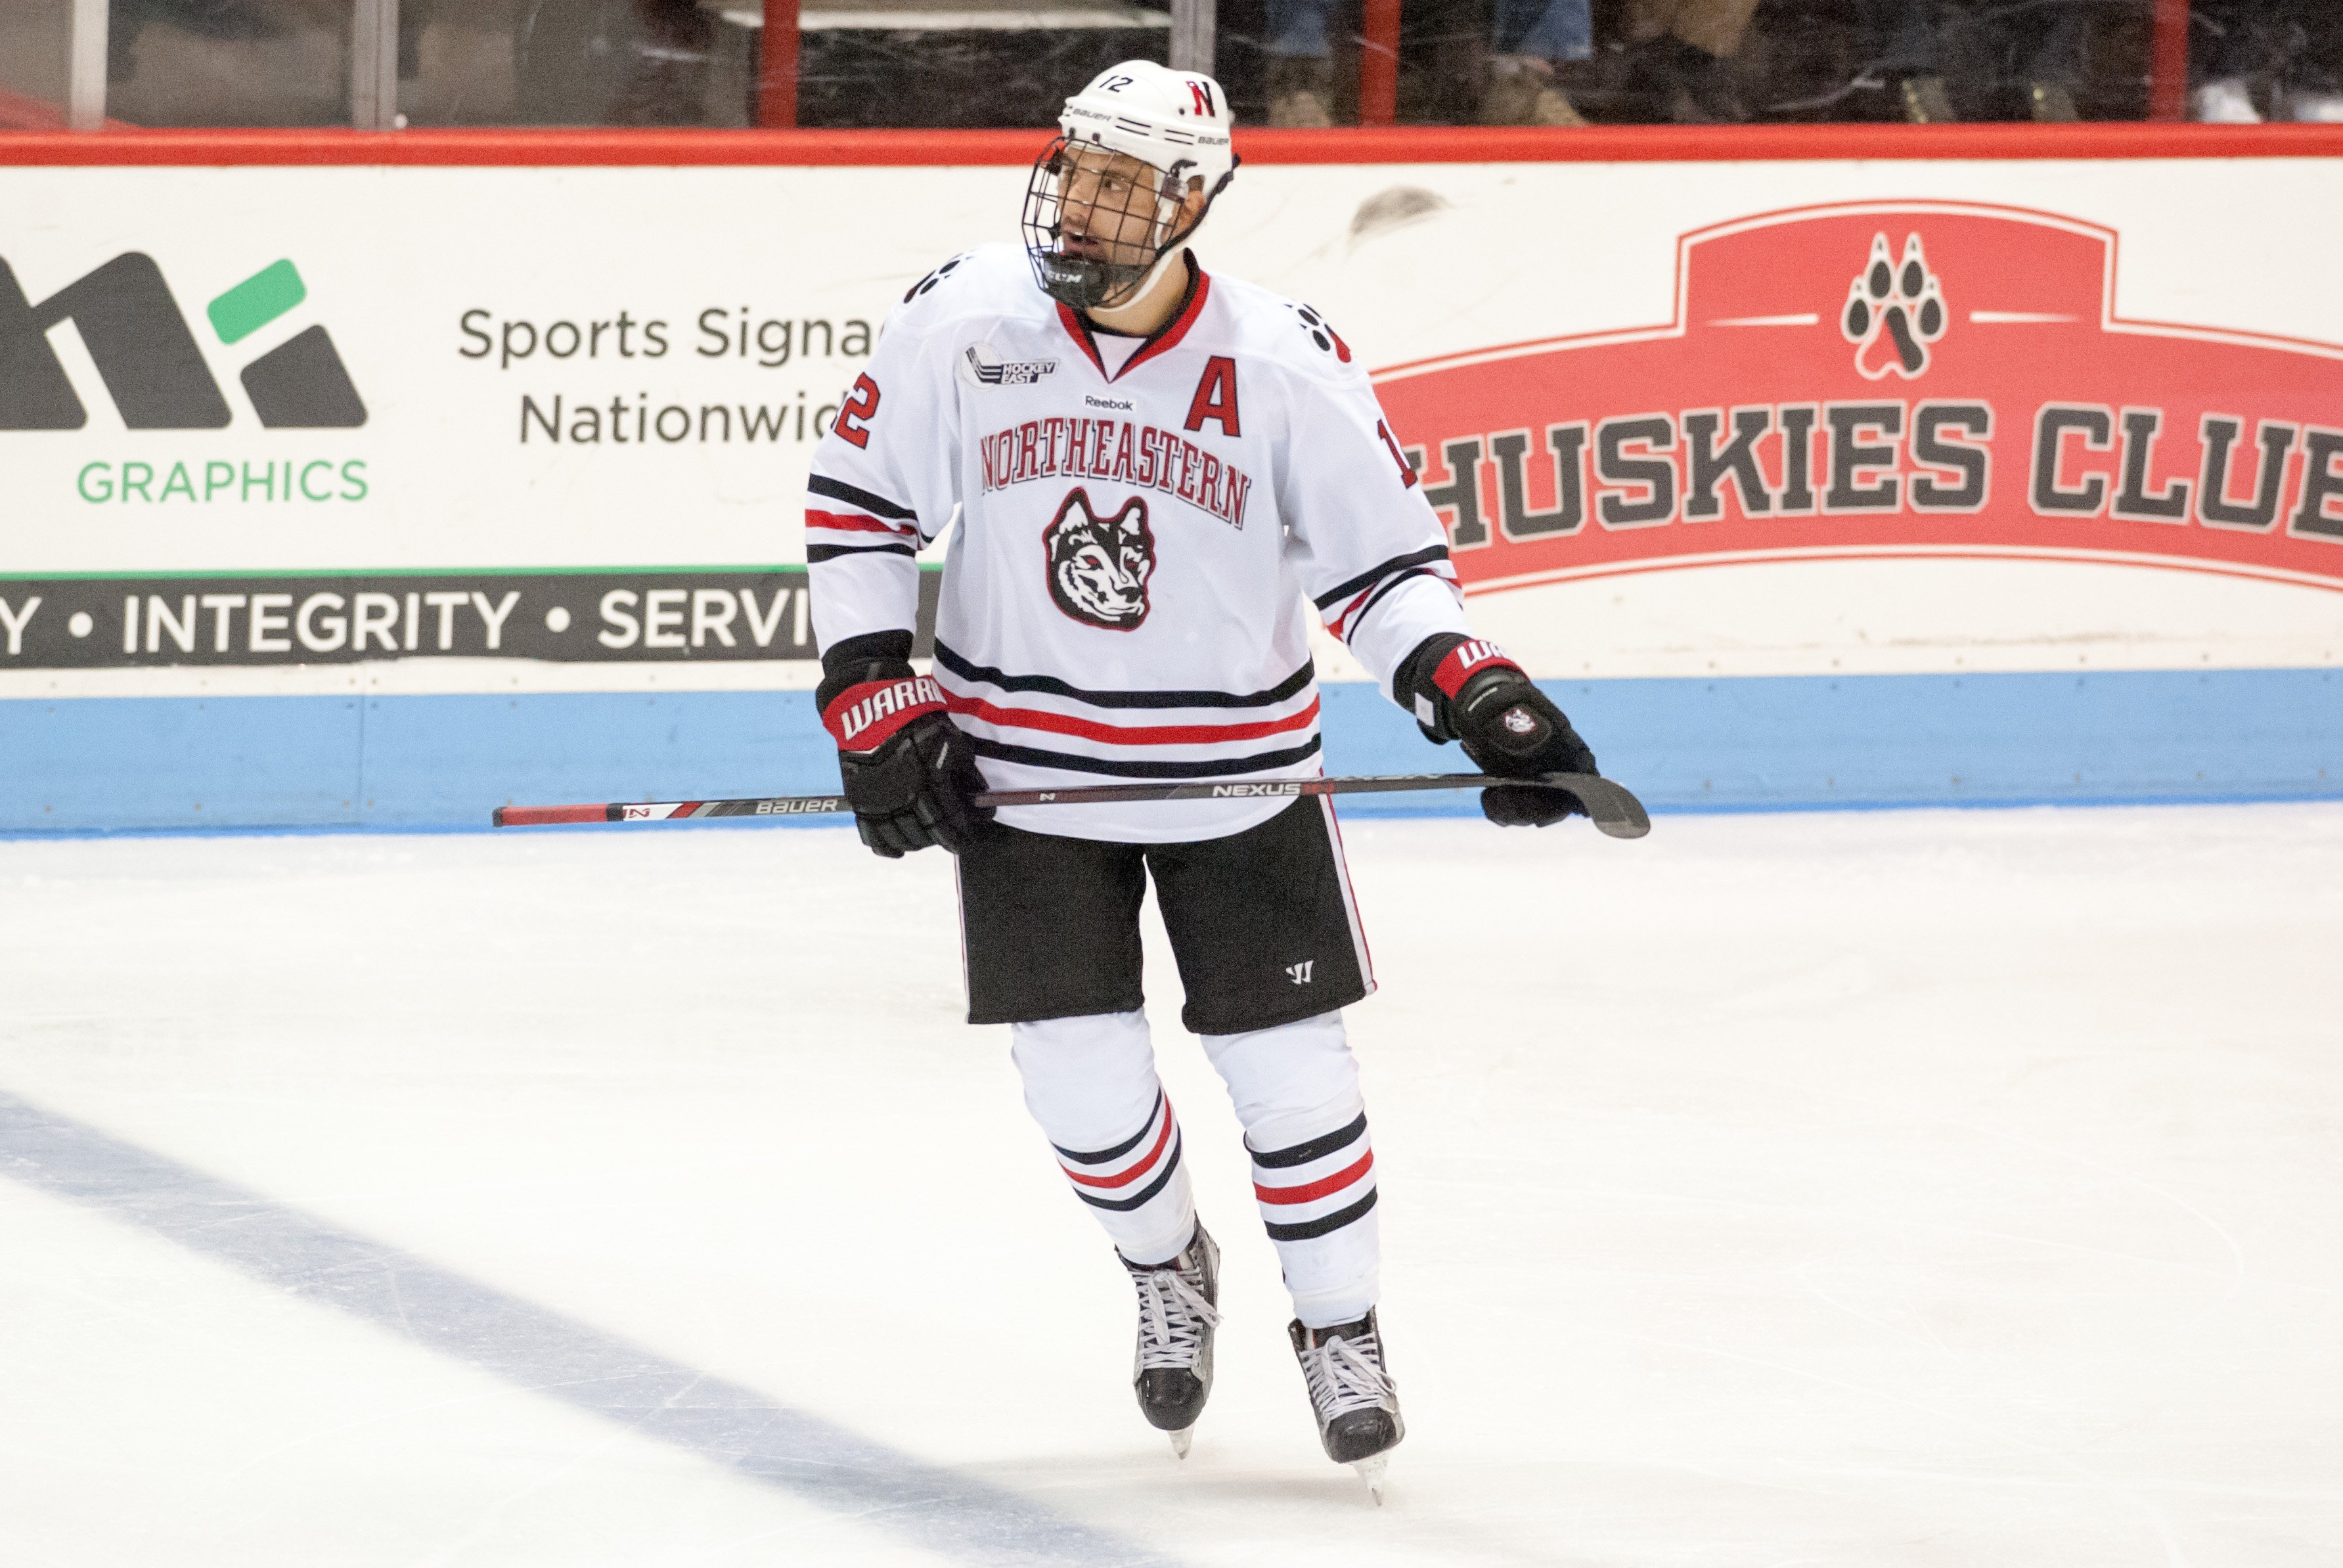 Hockey East: Collegiate Career Ends For Free Agent Aston-Reese